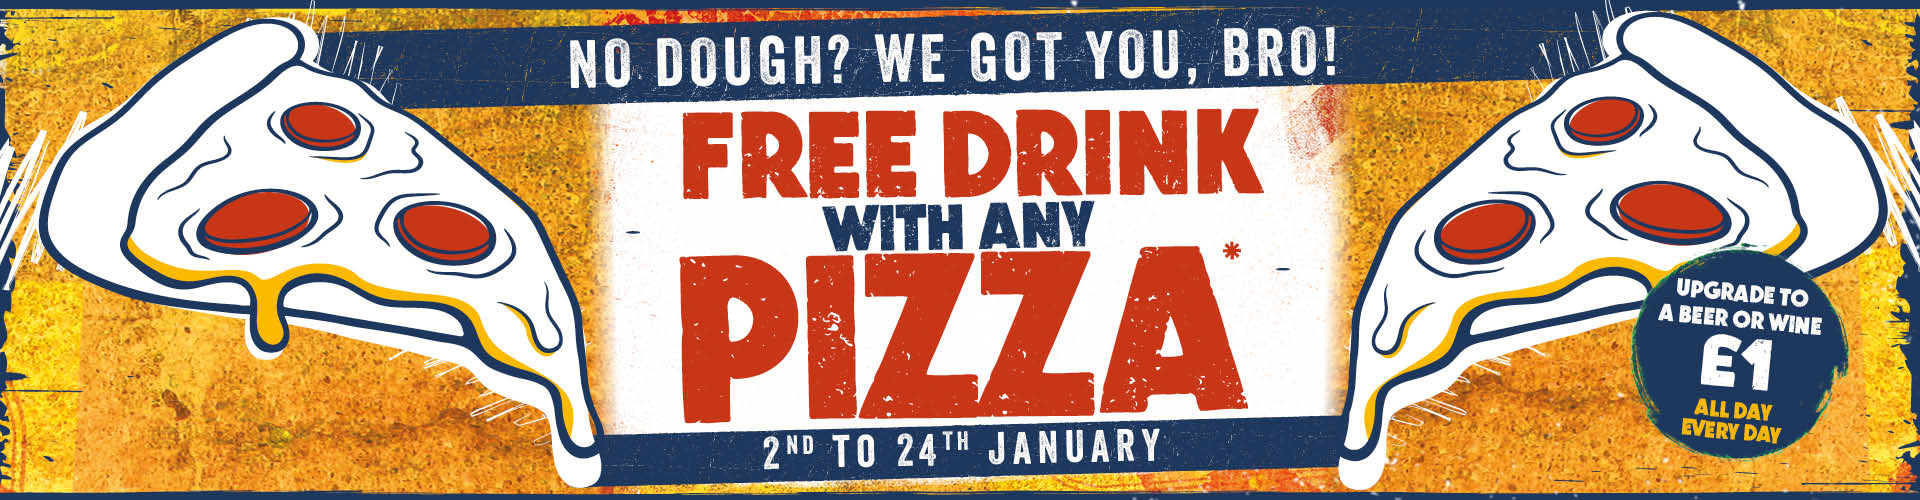 Free Drink With Any Pizza